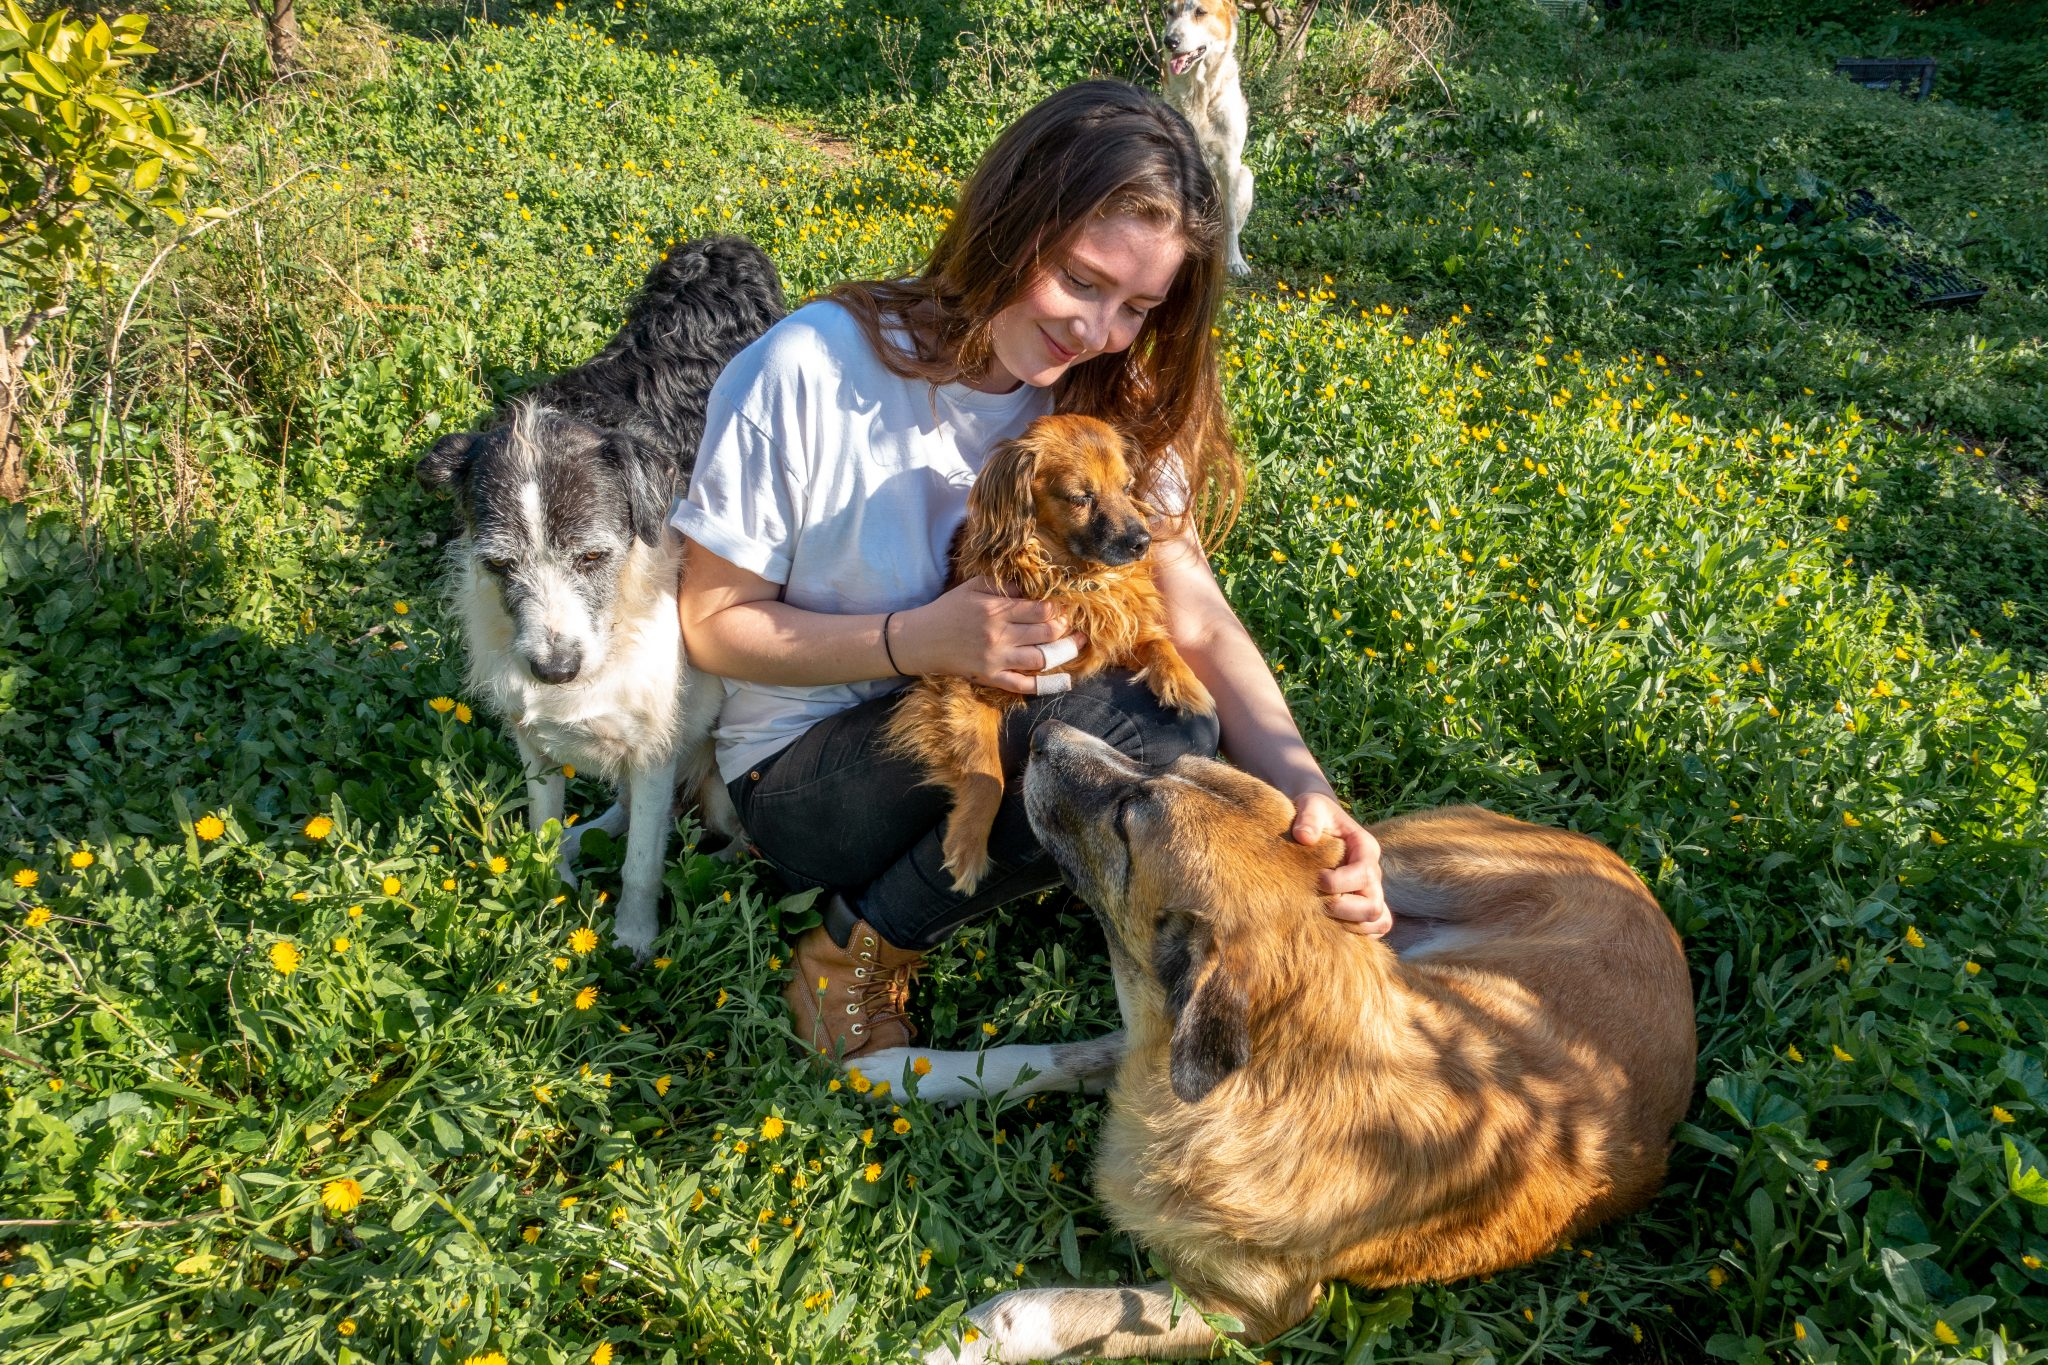 housesitting-guide-kostenlos-wohnen-andalusien-hunde